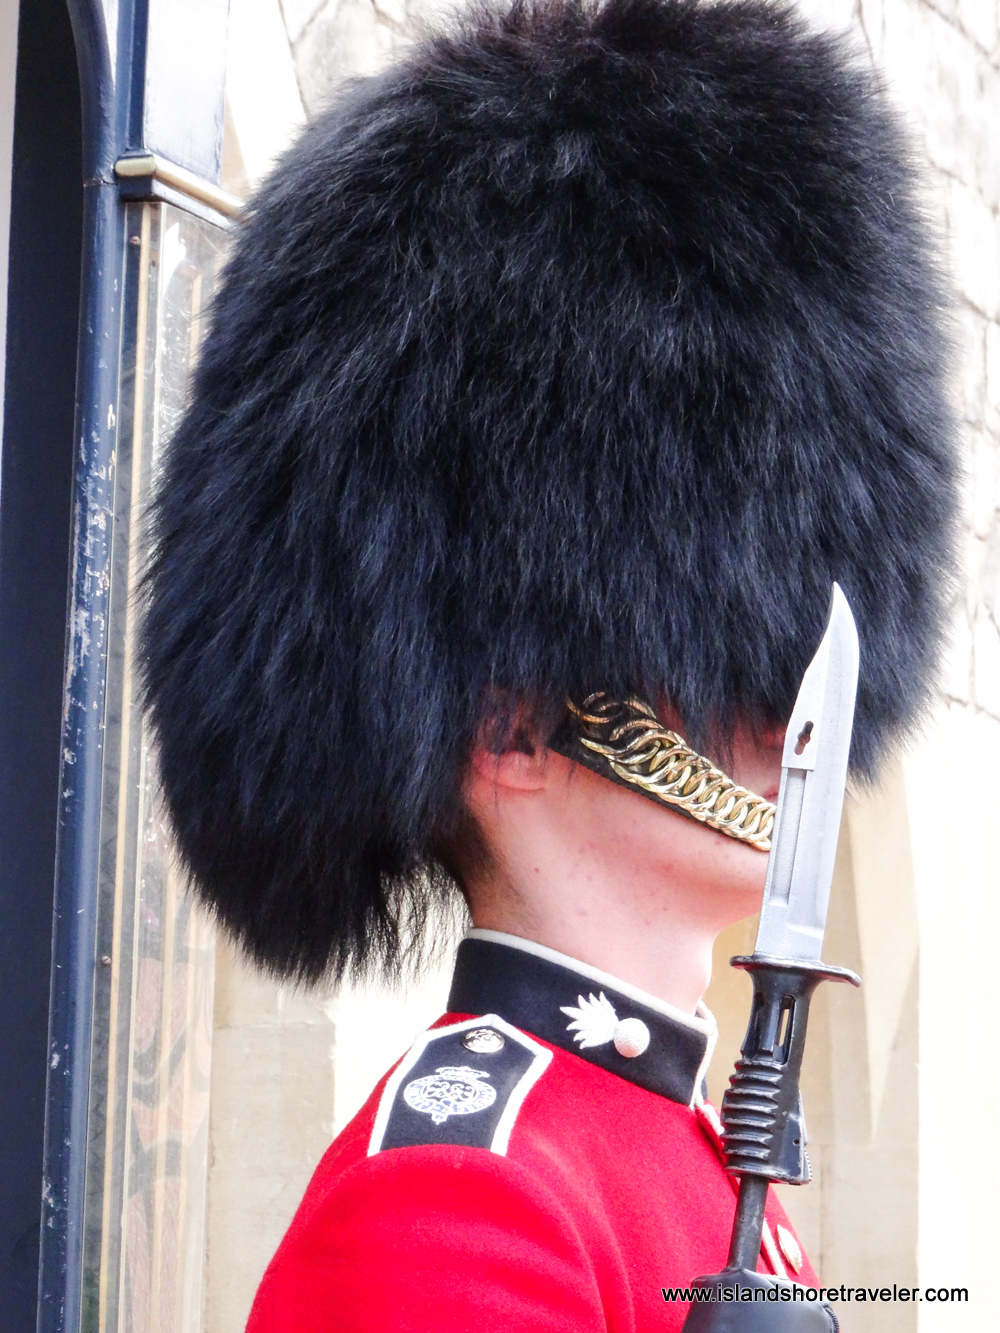 Guard at Windsor Castle